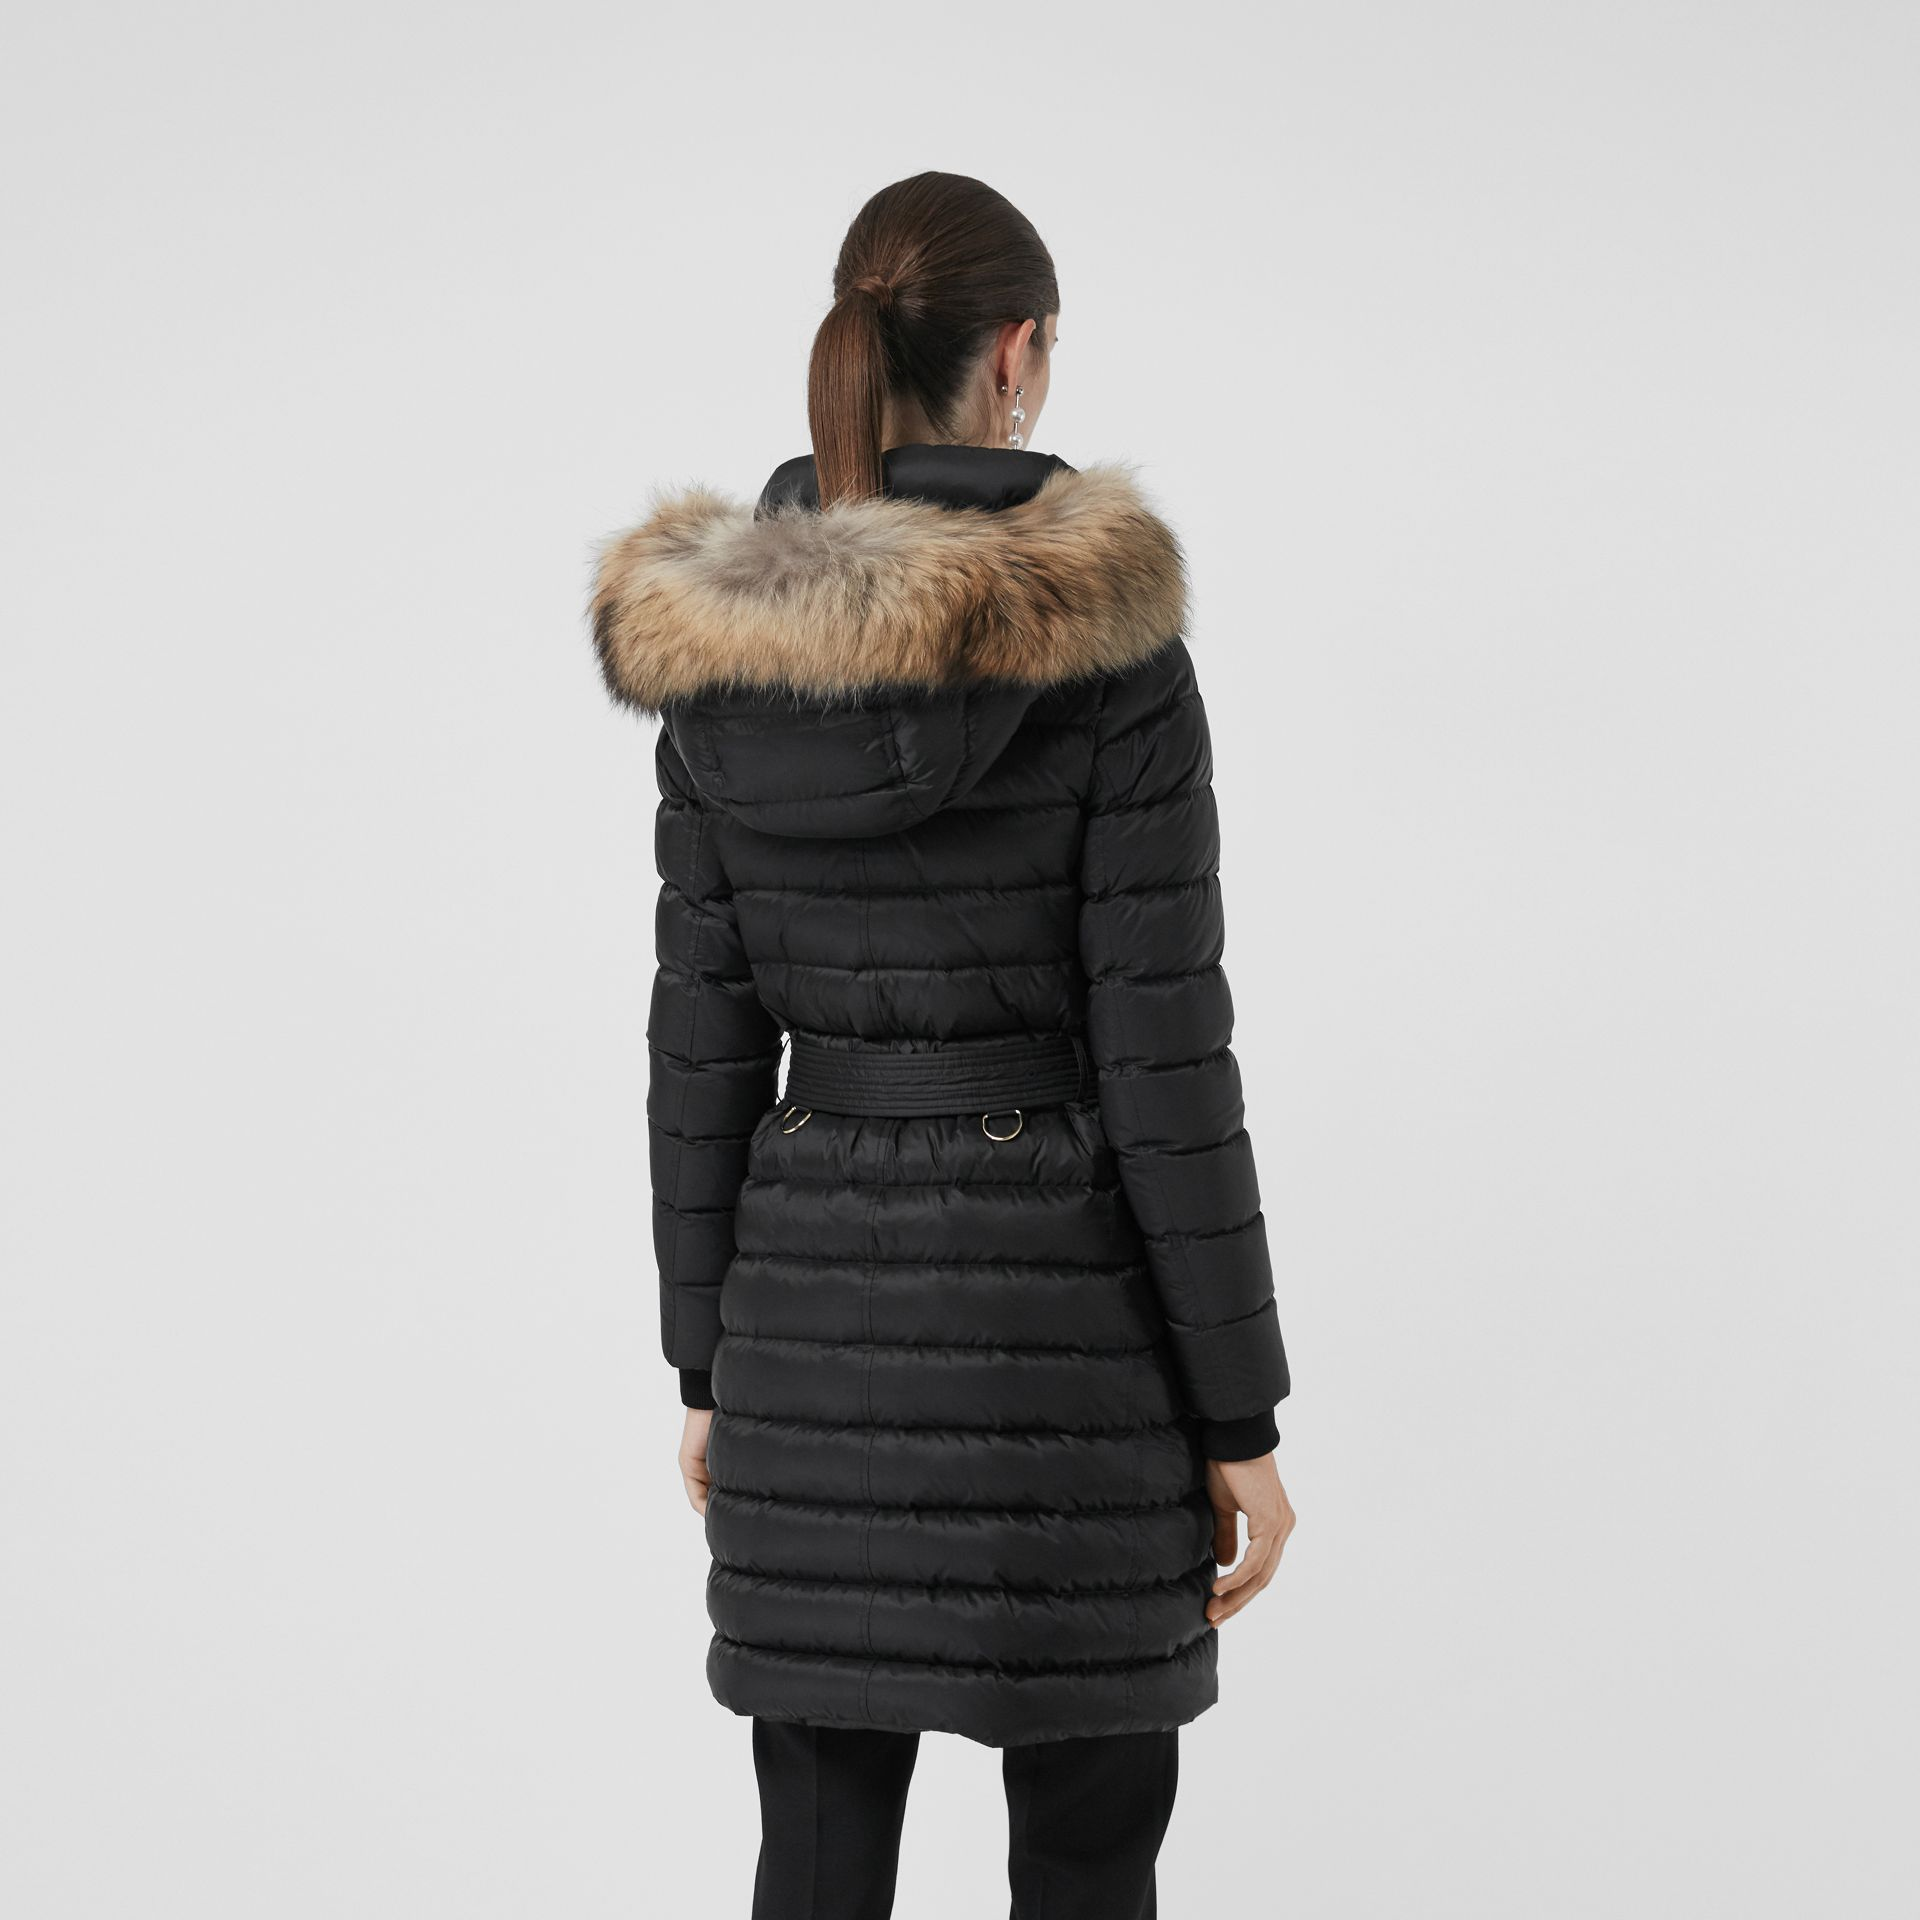 Detachable Fur Trim Down-filled Puffer Coat with Hood in Black - Women | Burberry United States - gallery image 2